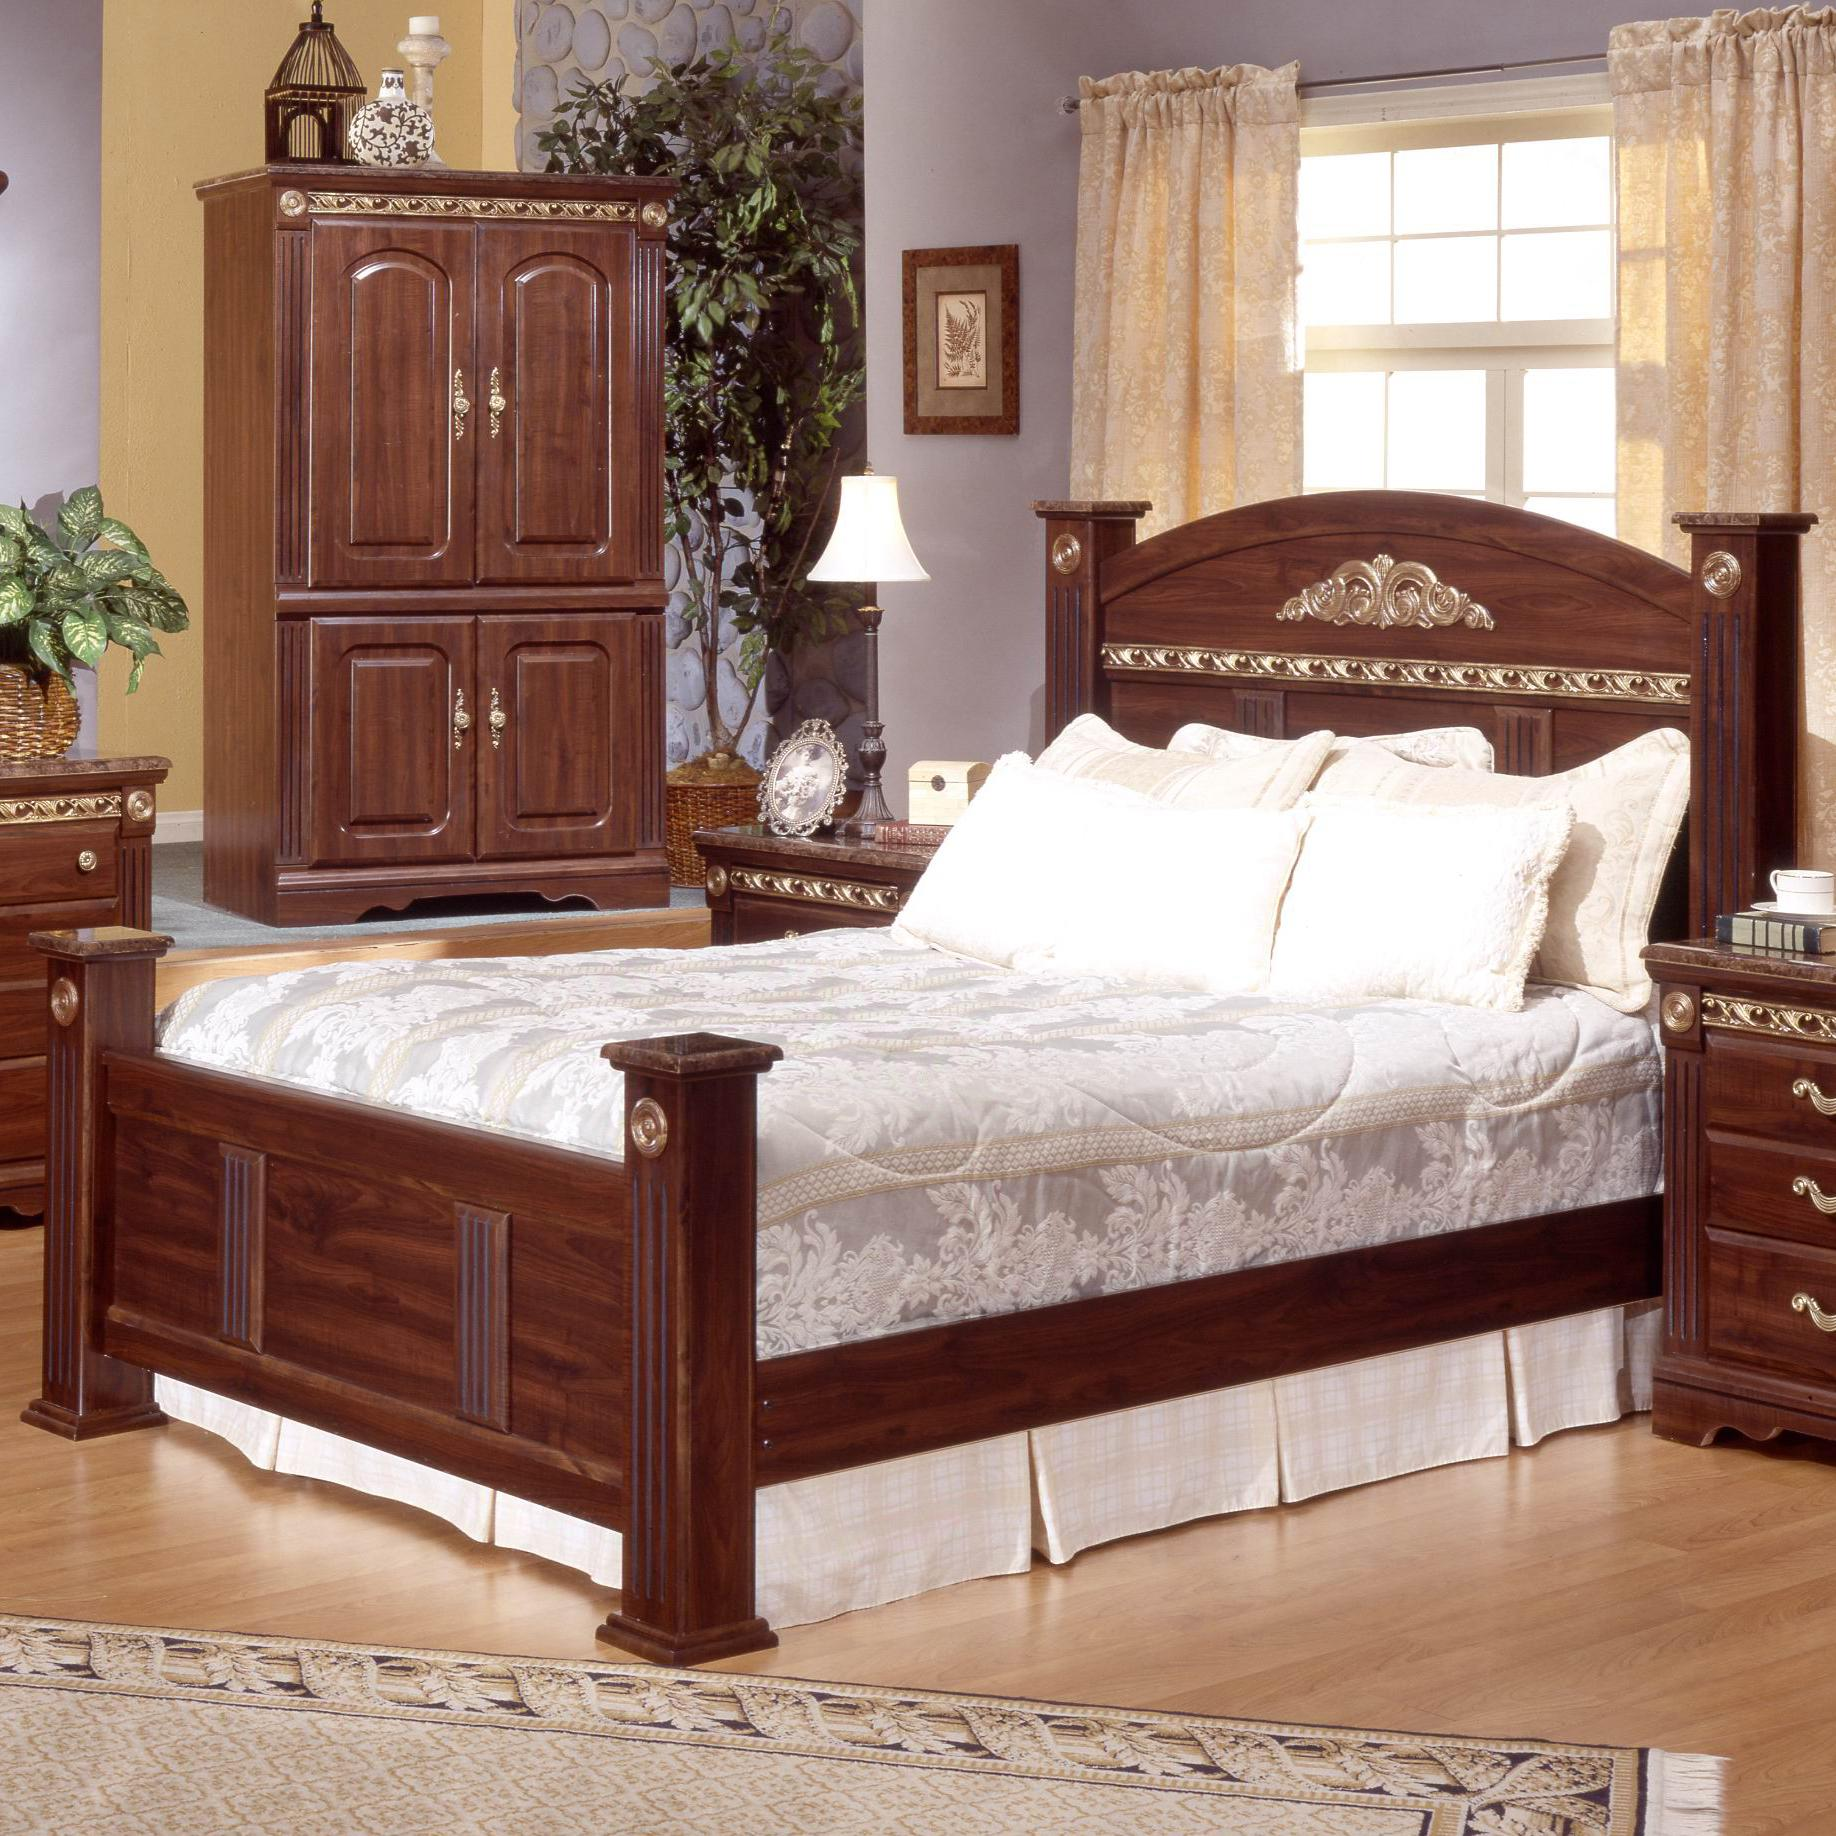 Sandberg Furniture Renaissance Marble King Estate Bed - Item Number: 17418H+F+17466R